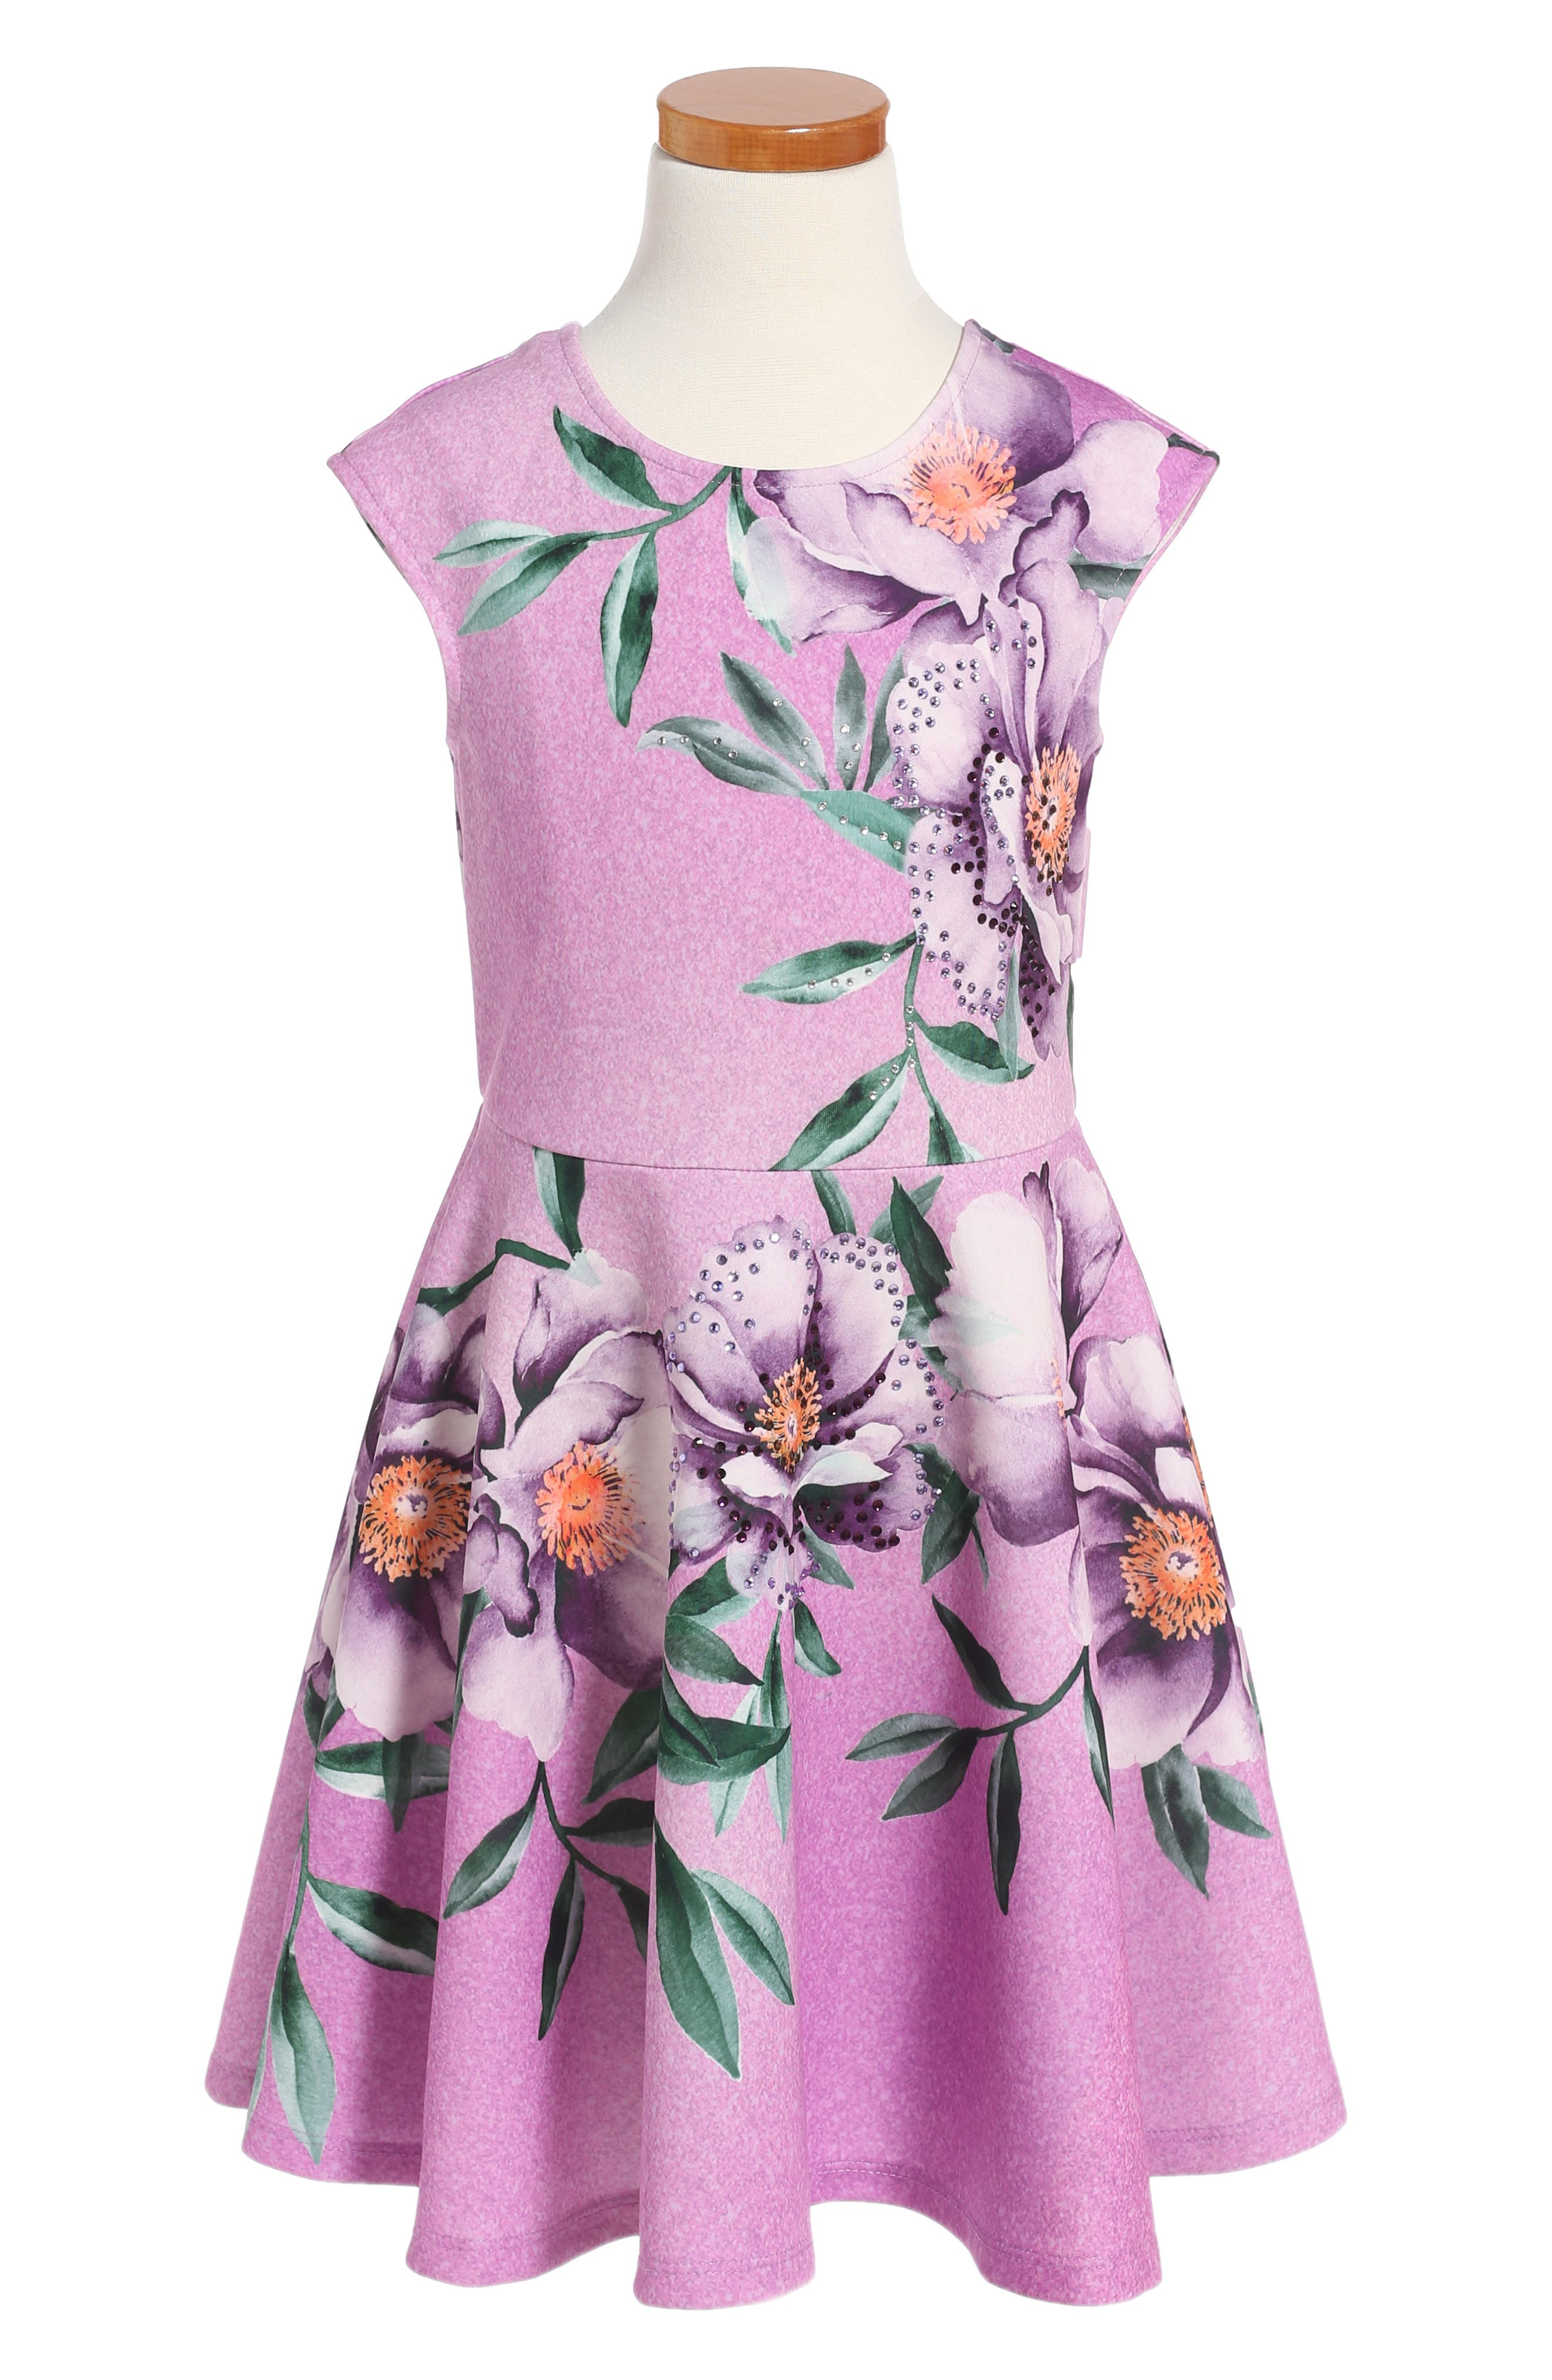 Main Image - Hannah Banana Floral Print Skater Dress (Toddler Girls, Little Girls & Big Girls)